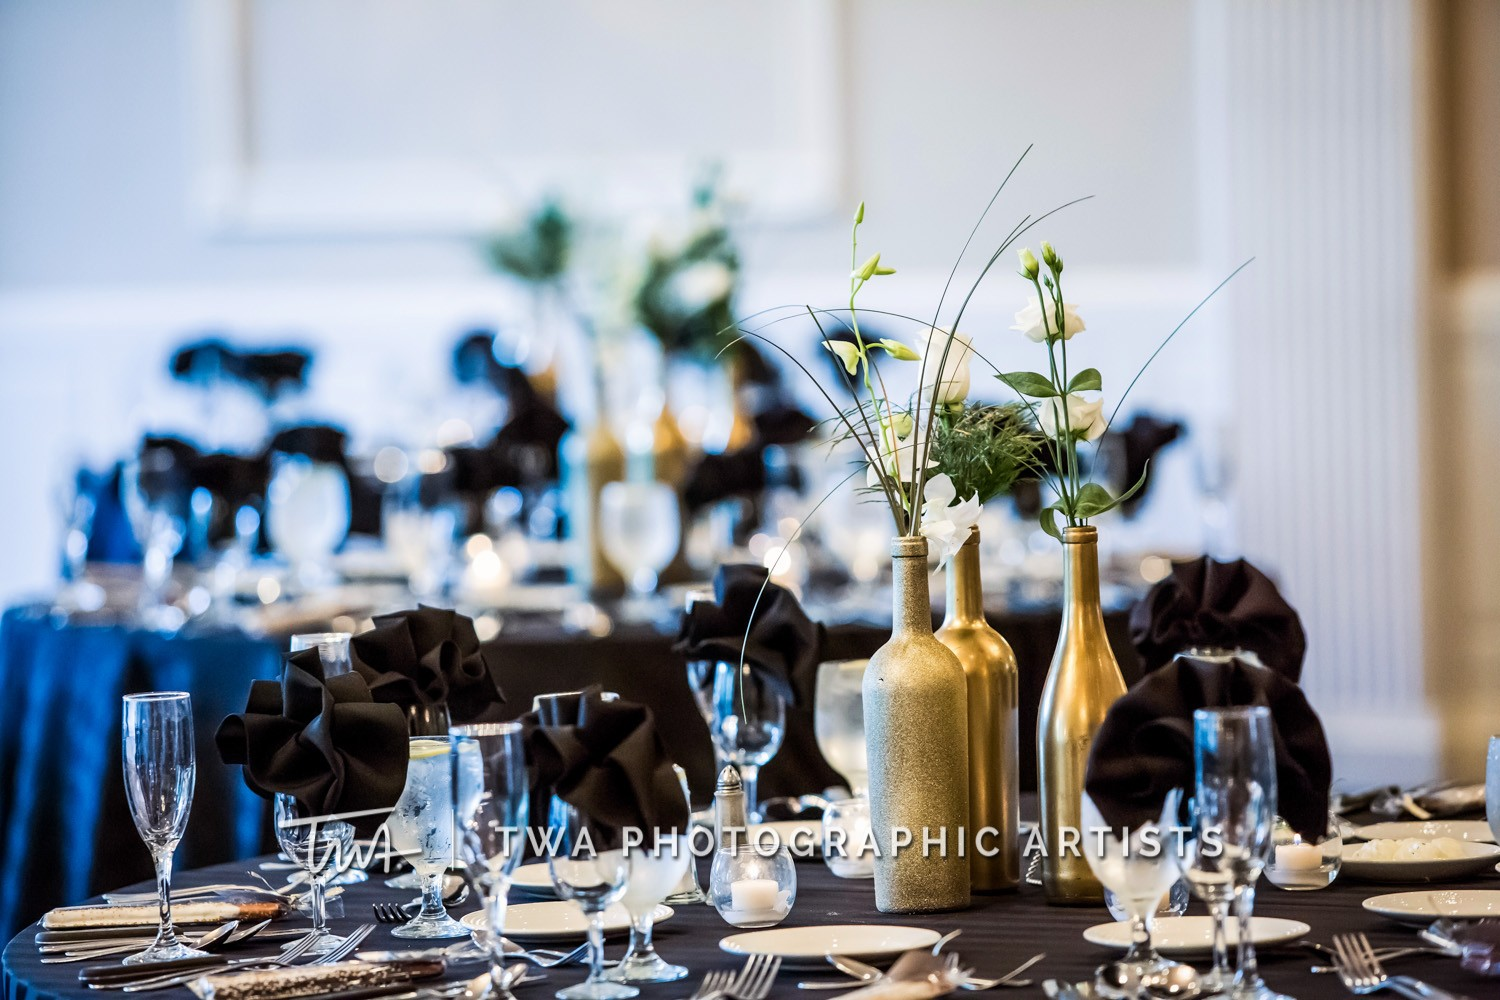 Chicago-Wedding-Photographer-TWA-Photographic-Artists-Abbington-Banquets_Slattery_Swanberg_MiC_NS-0467